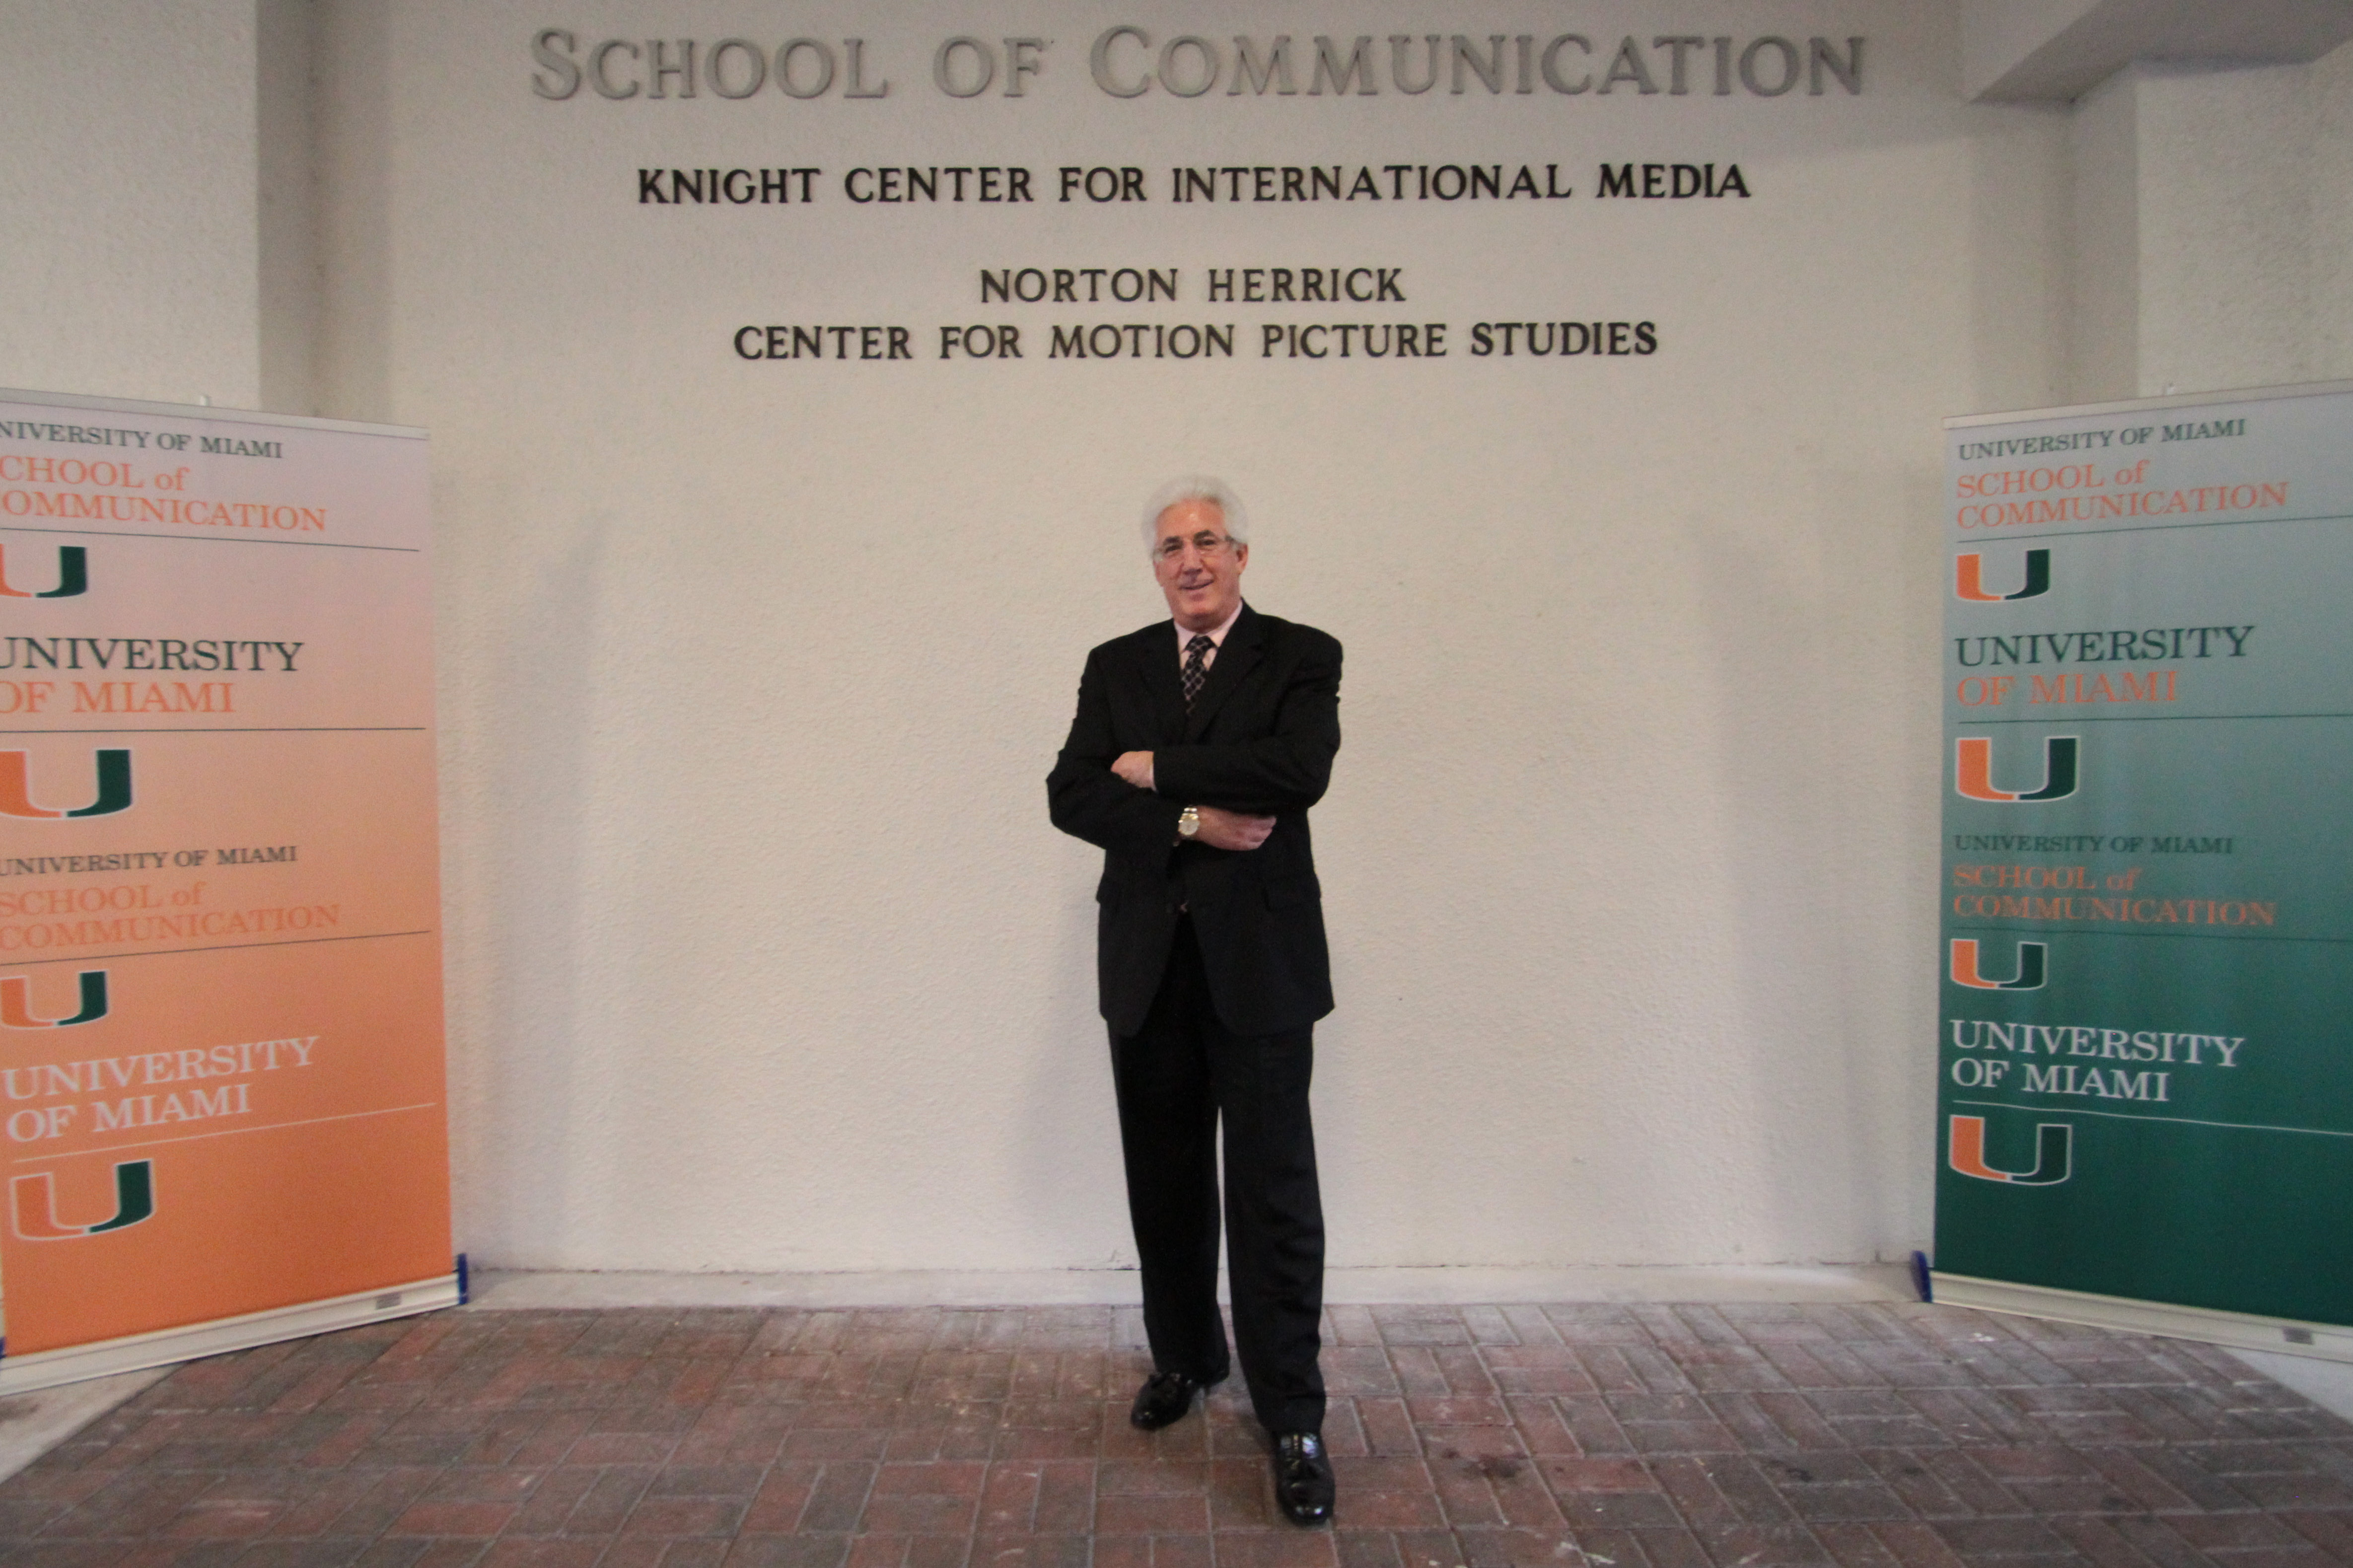 Norton Herrick at the Norton Herrick Center for Motion Picture Studies